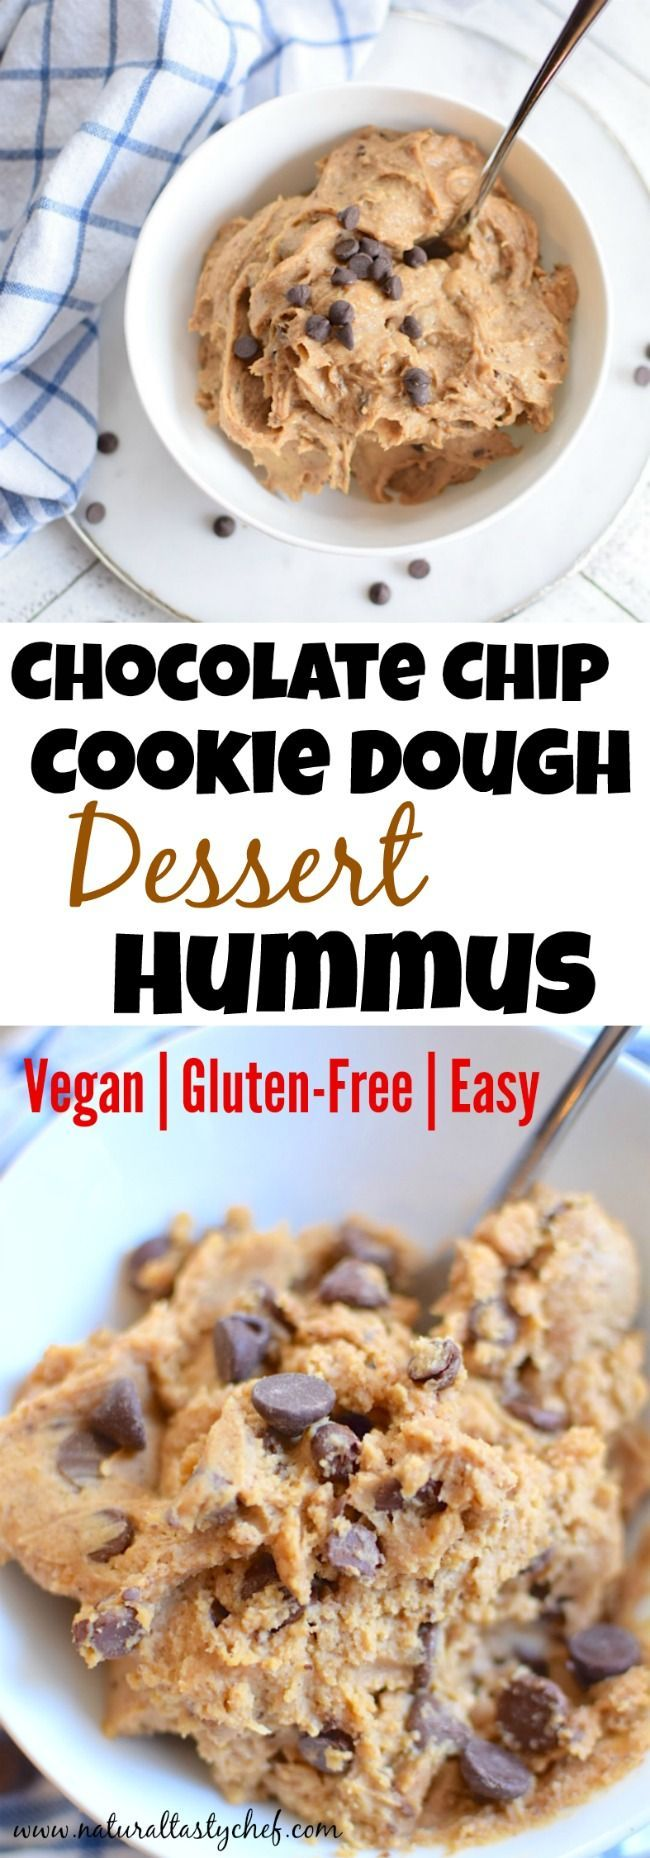 Chocolate Chip Cookie Dough Hummus | Natural Tasty Chef